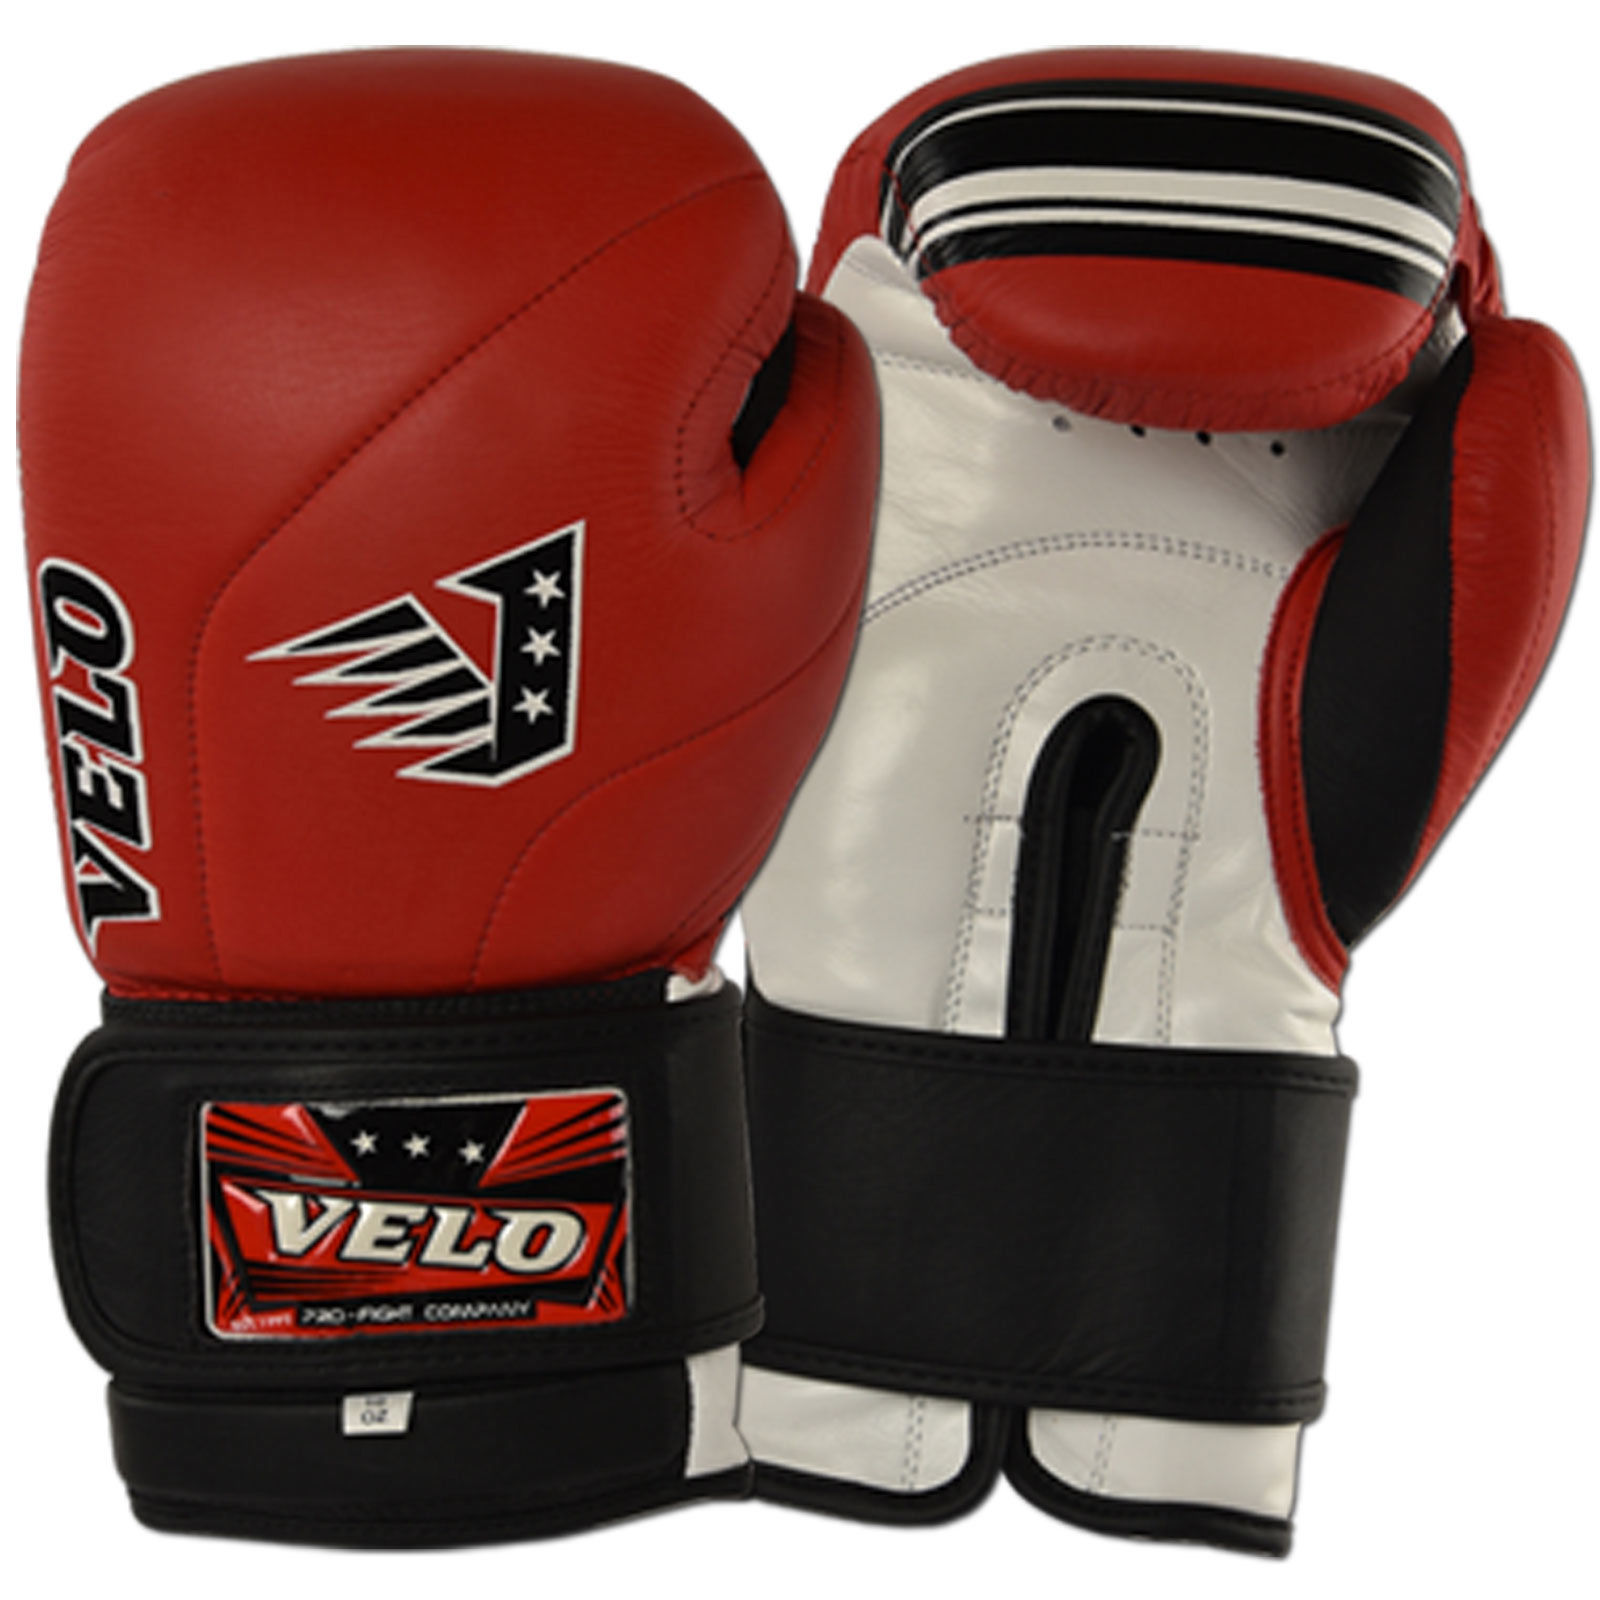 VELO Boxing Gloves - AIBA Boxing Gloves